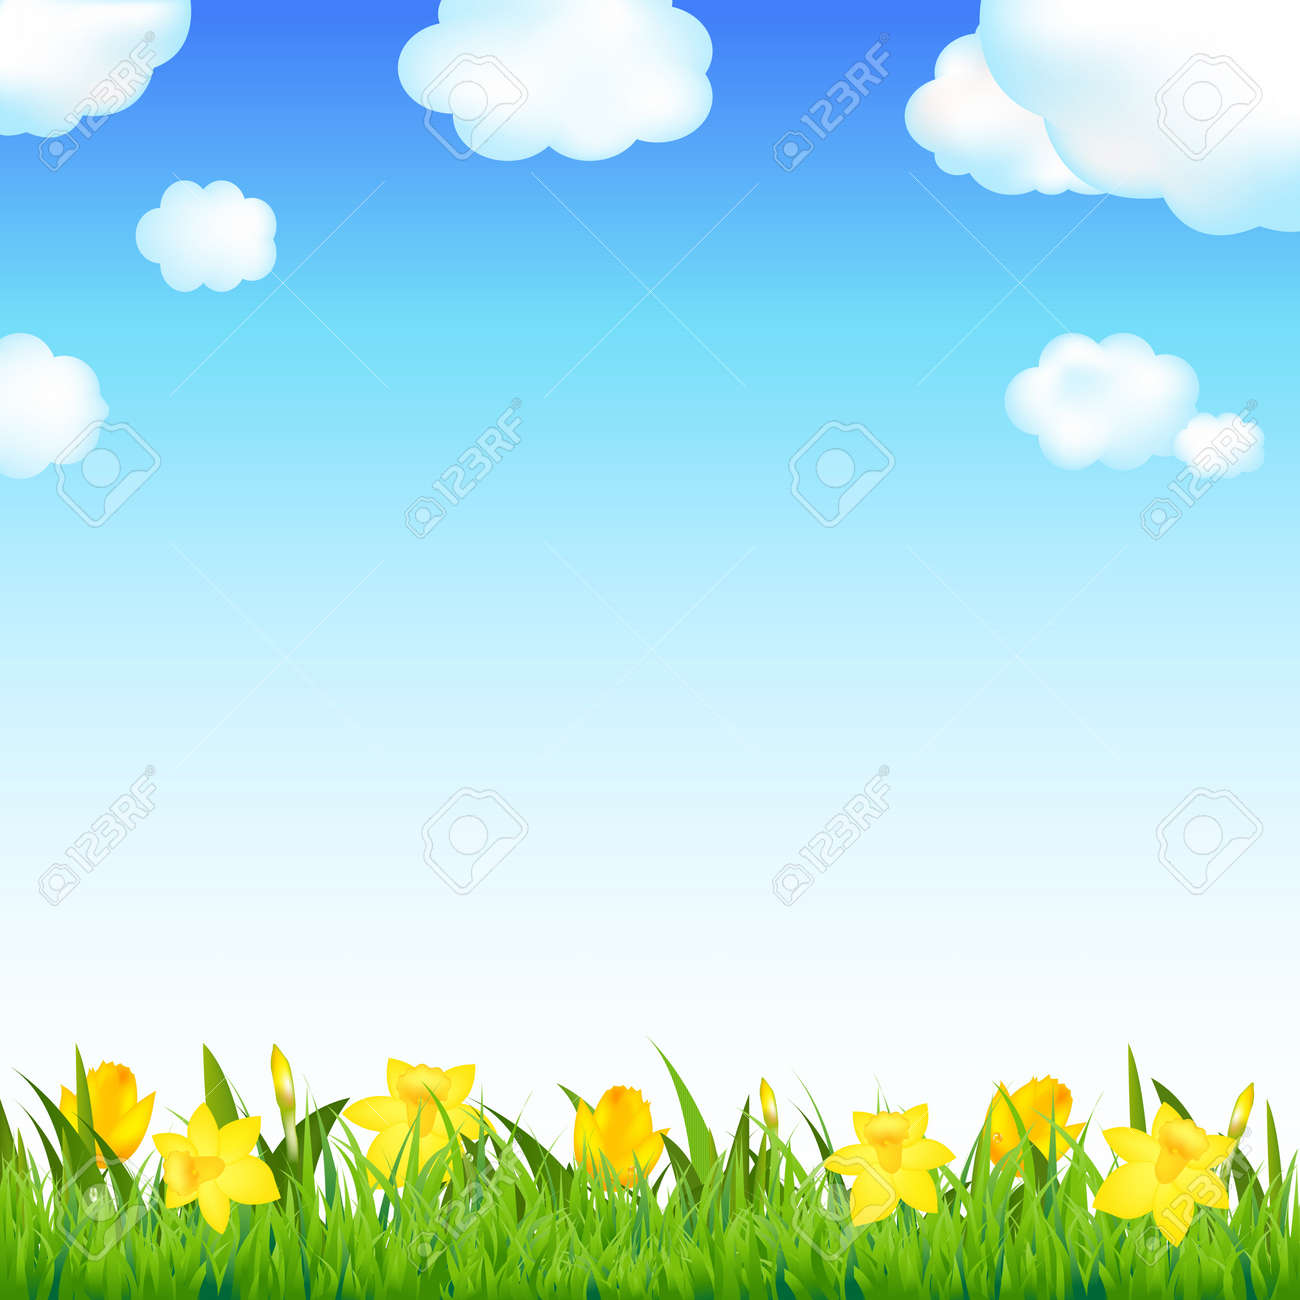 sky border clipart. flower meadow with grass and cloud illustration stock vector 12487216 sky border clipart a